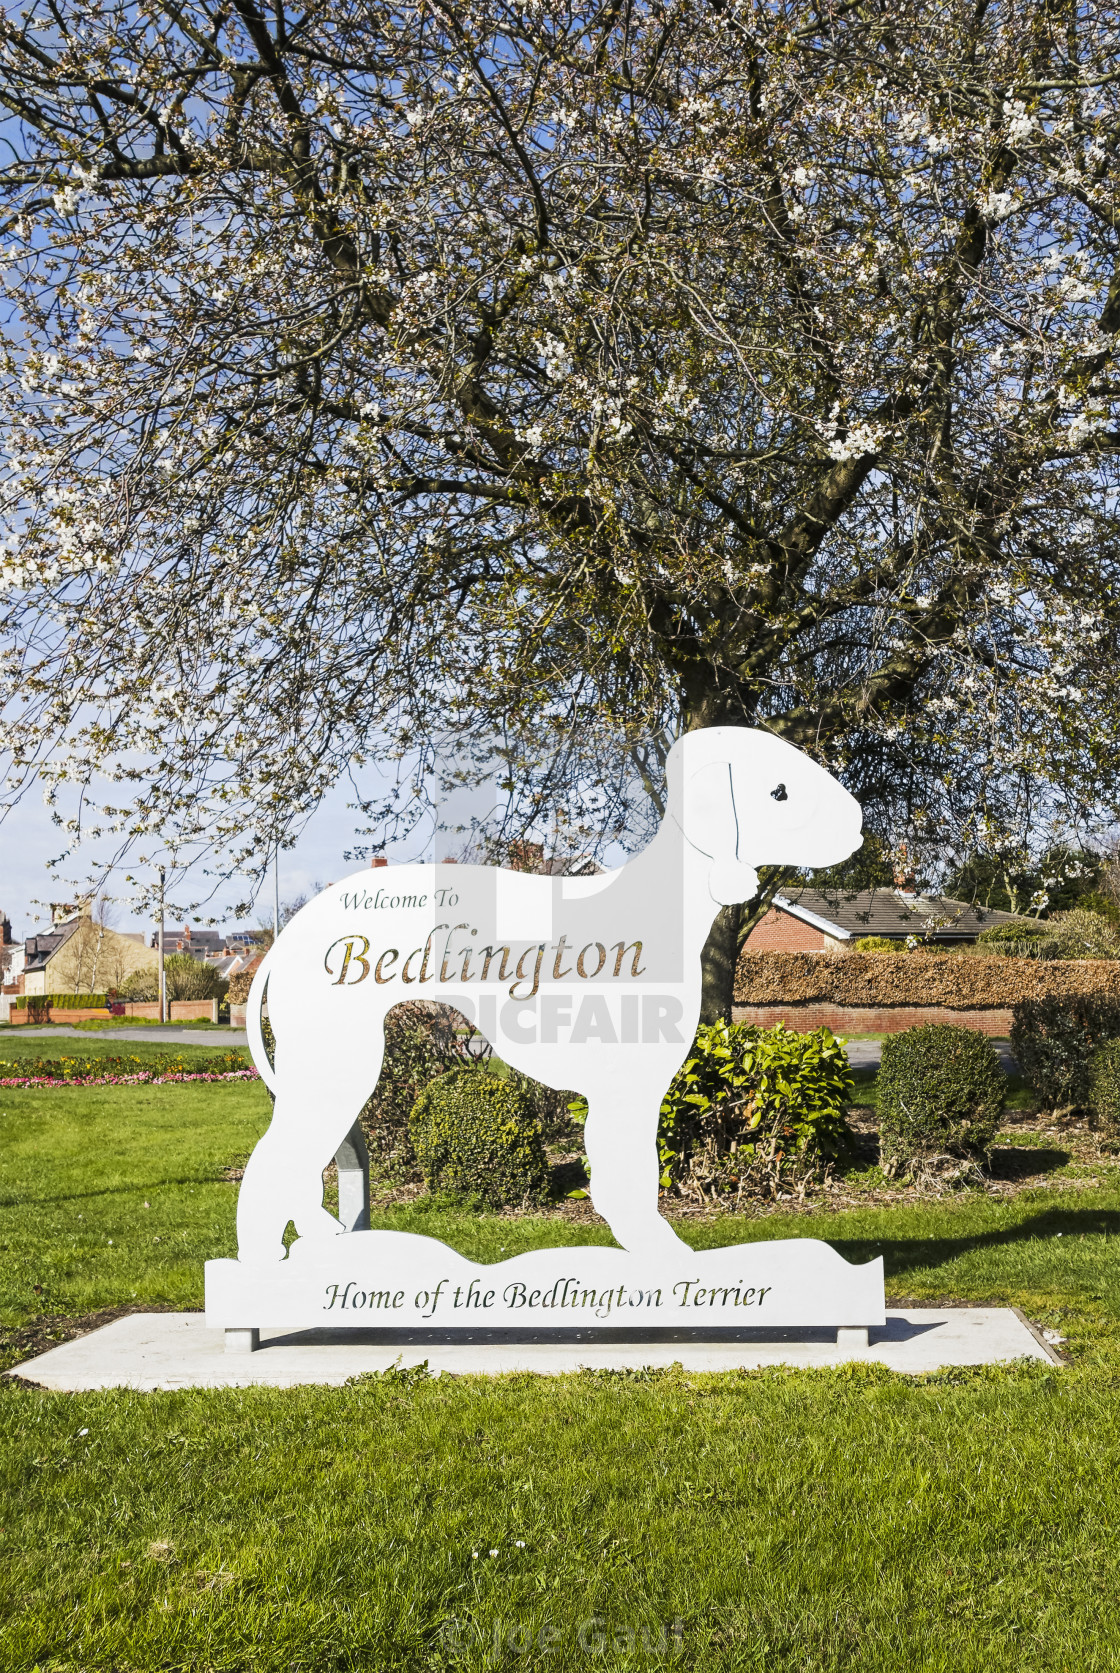 """Bedlington terrier sign at Bedlington, Northumberland, UK"" stock image"